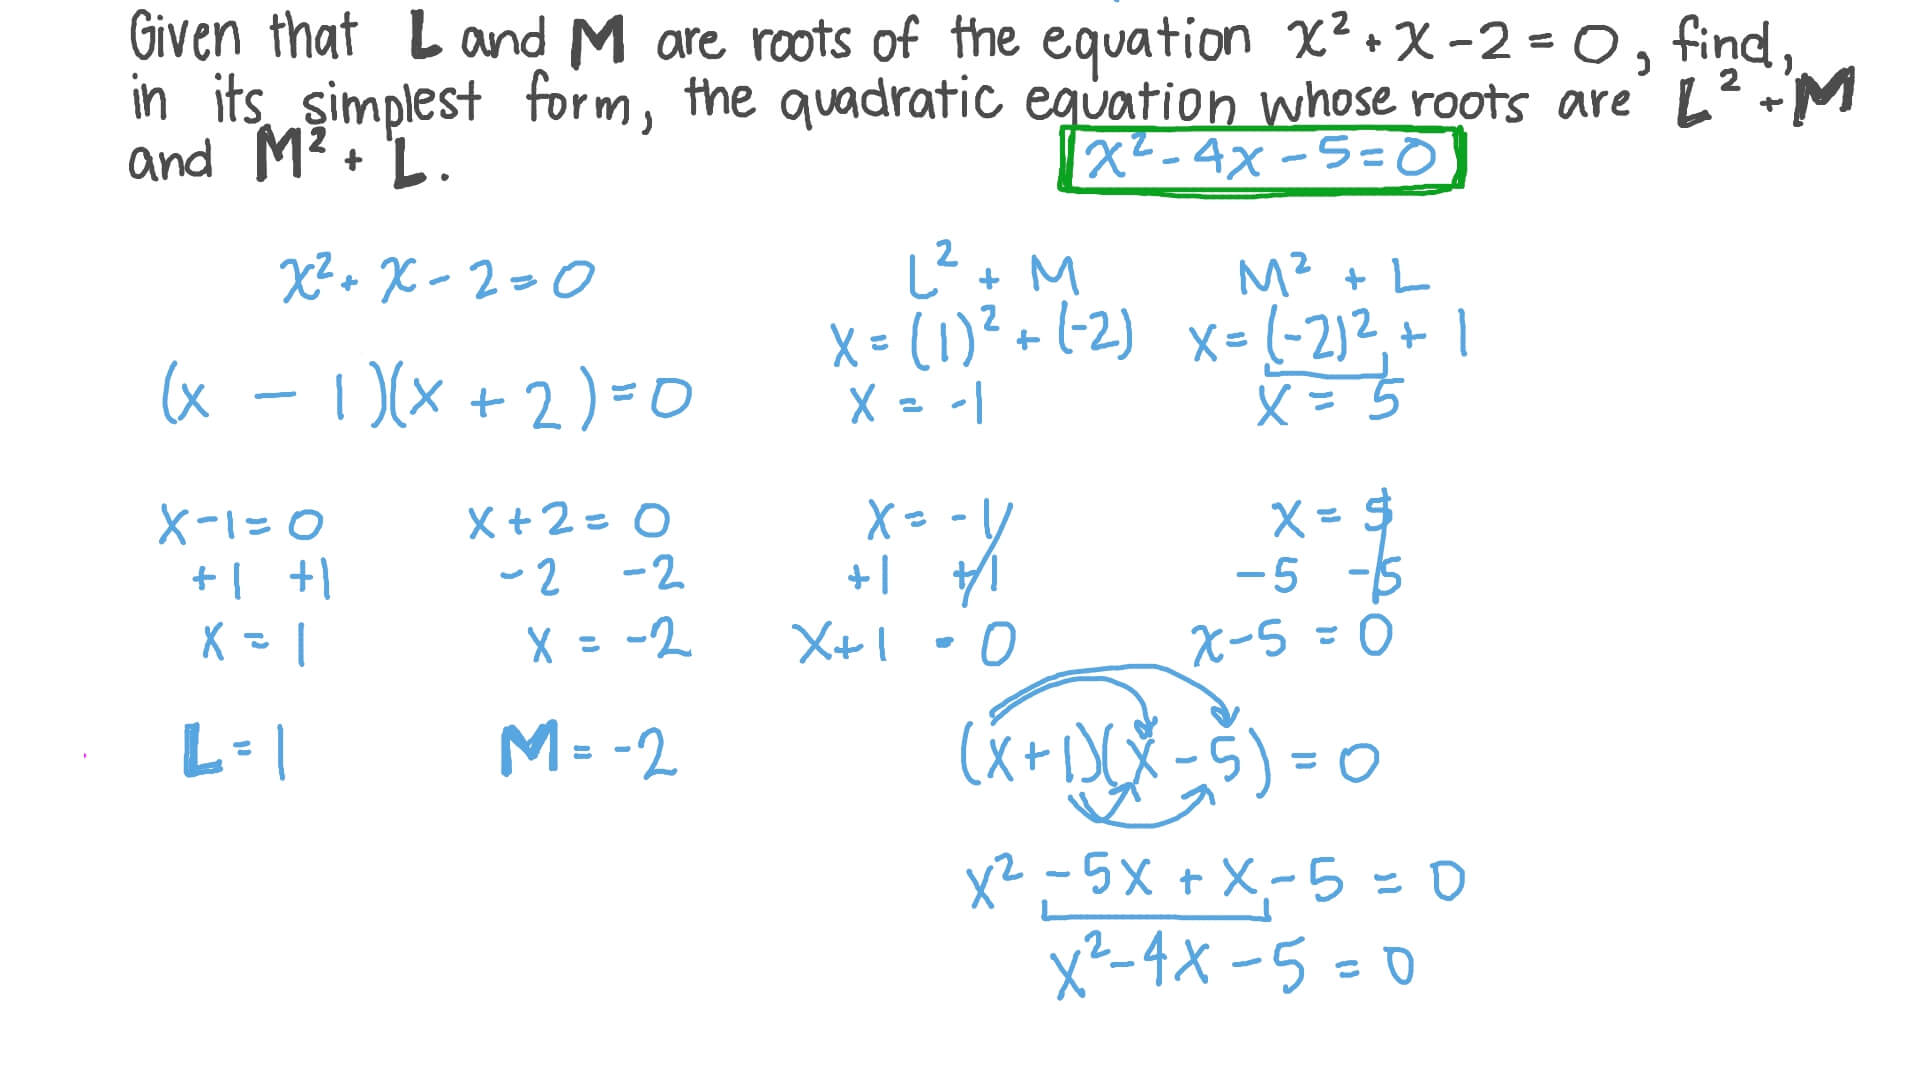 simplest form quadratic equations  Forming Quadratic Equations in the Simplest Form Using the Relation between  Them and Their Roots